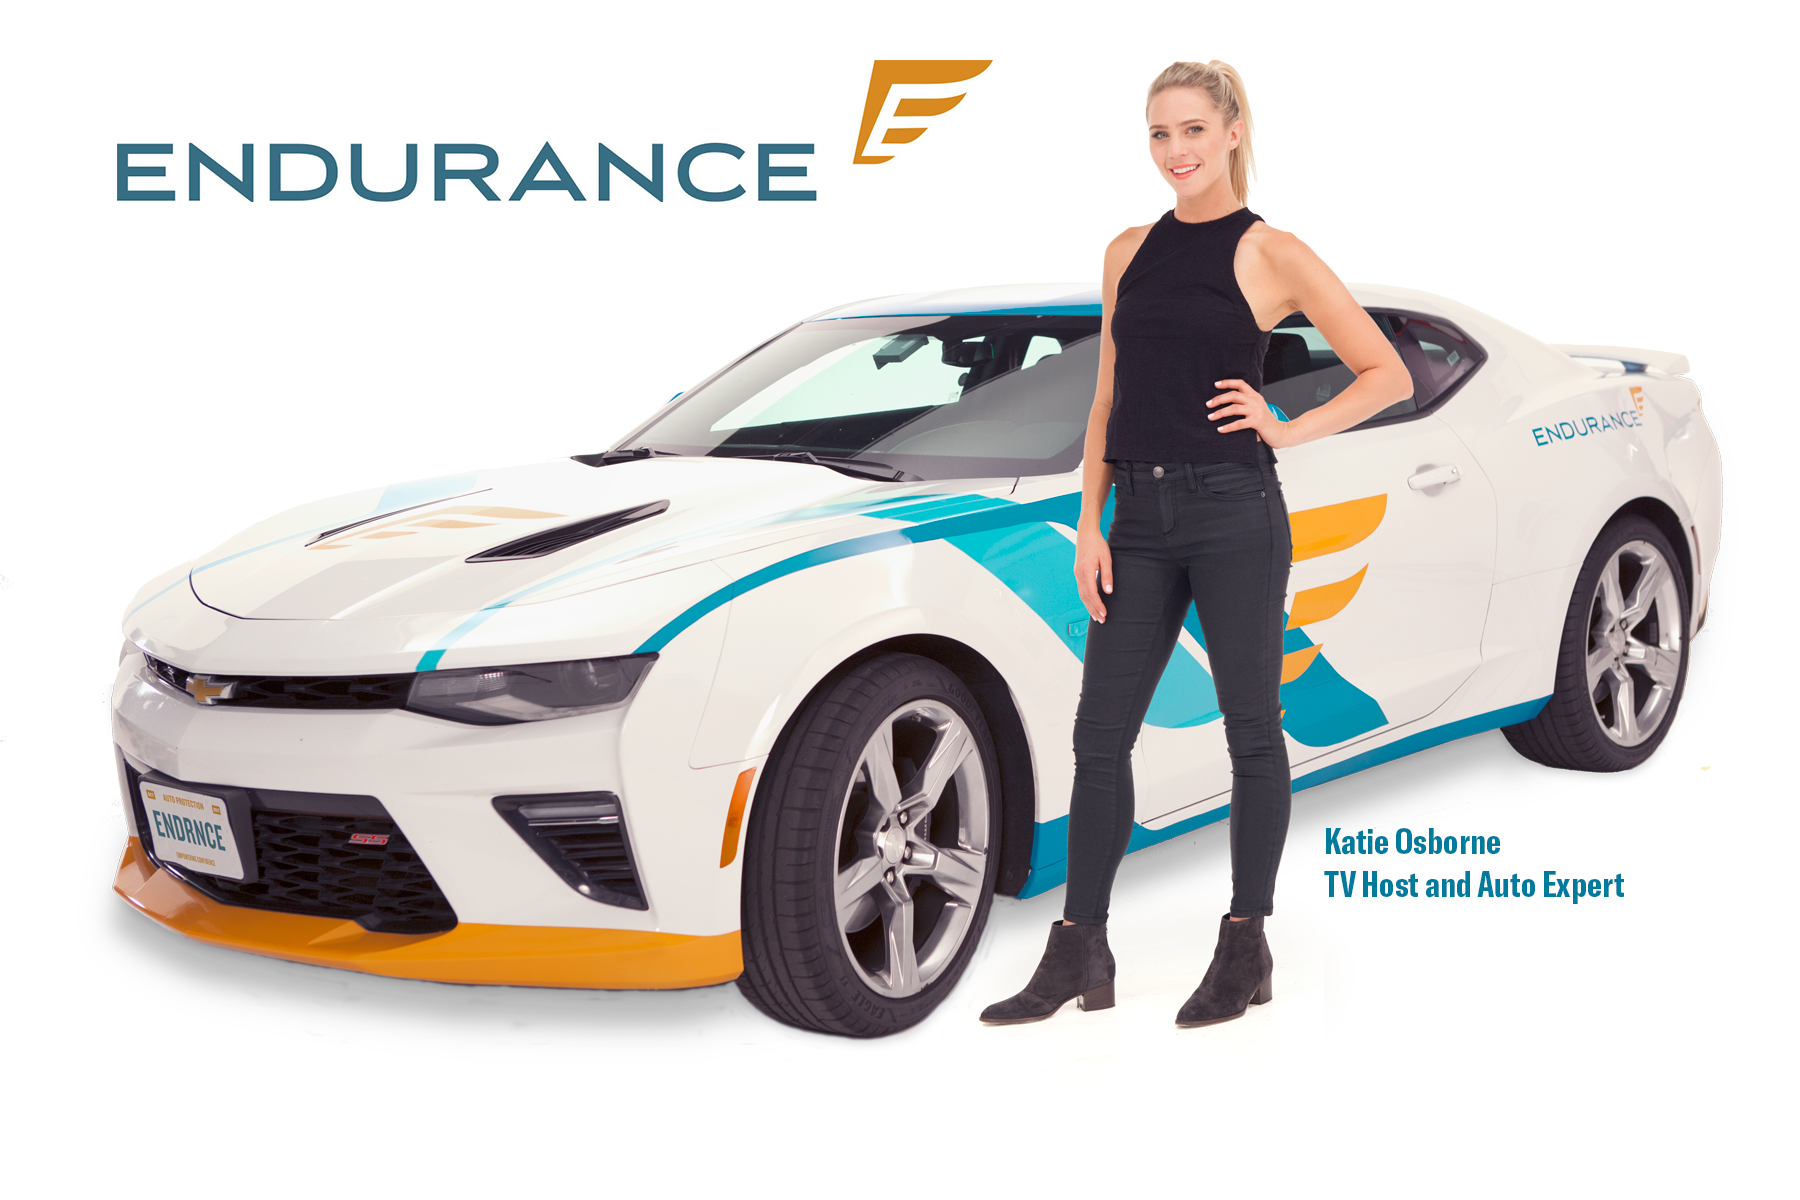 Endurance Vehicle Protection and Katie Osborne Launch New